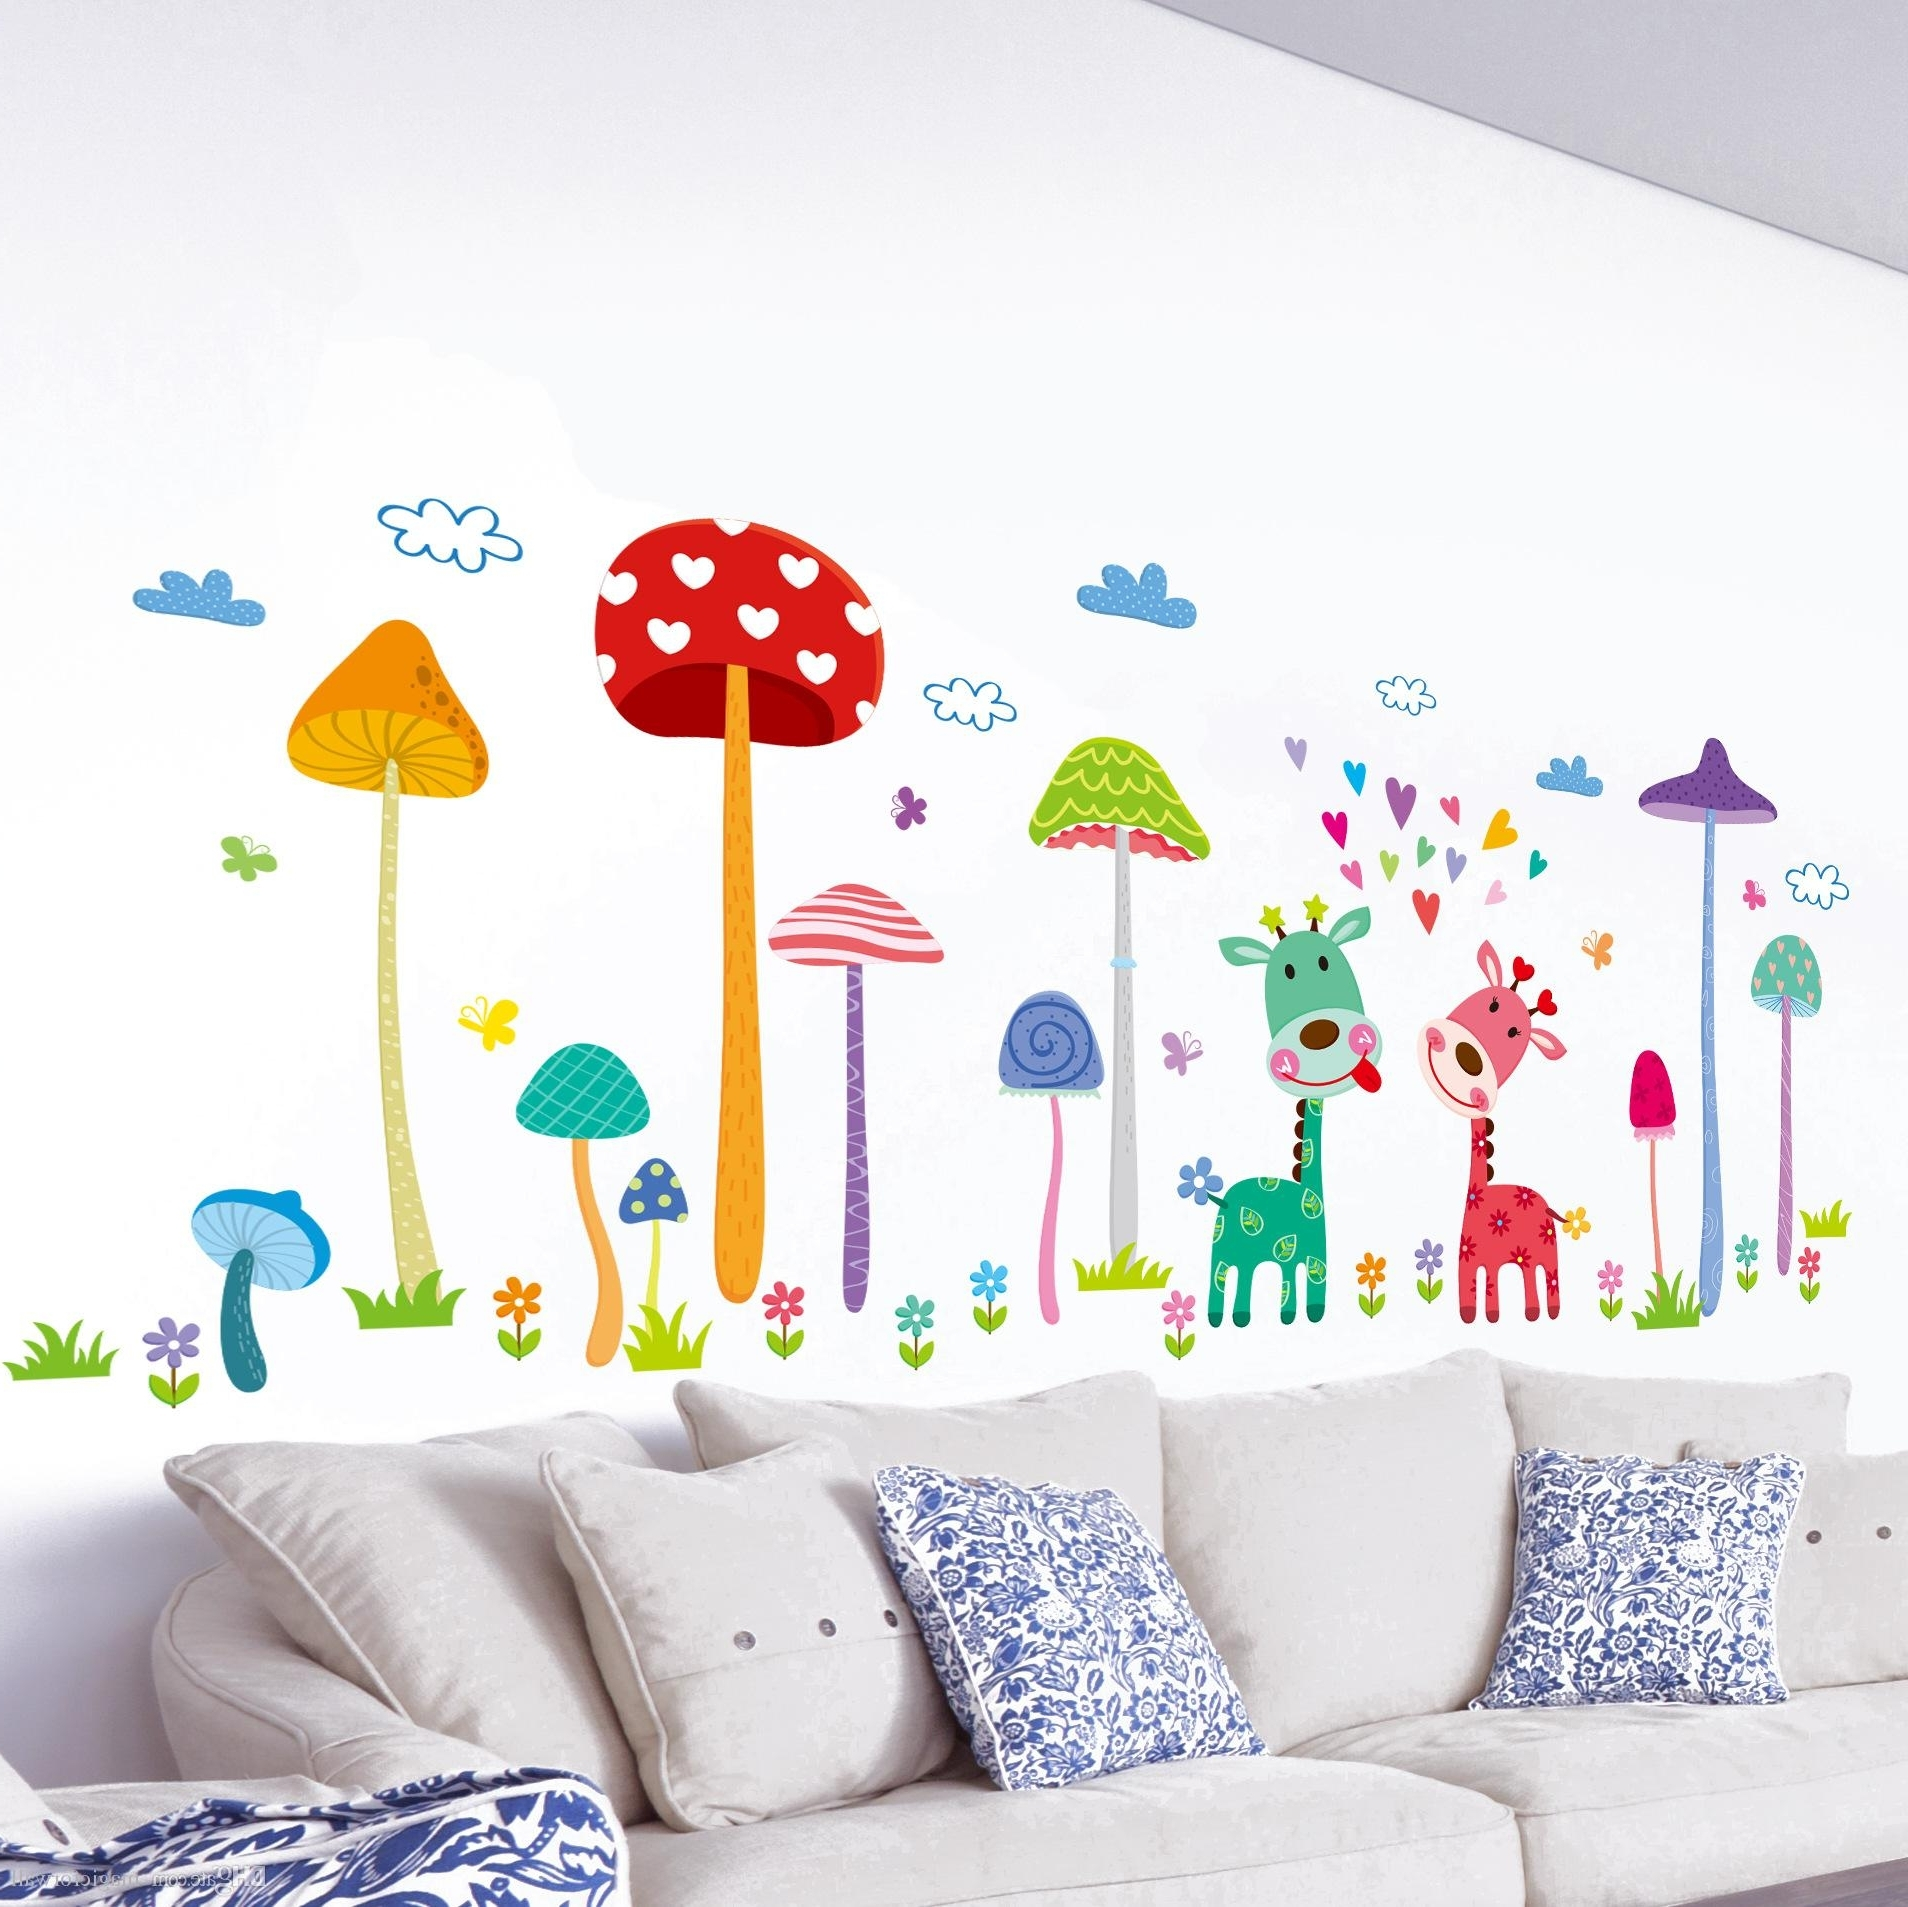 Famous Baby Nursery Fabric Wall Art Inside Forest Mushroom Deer Animals Home Wall Art Mural Decor Kids Babies (View 6 of 15)